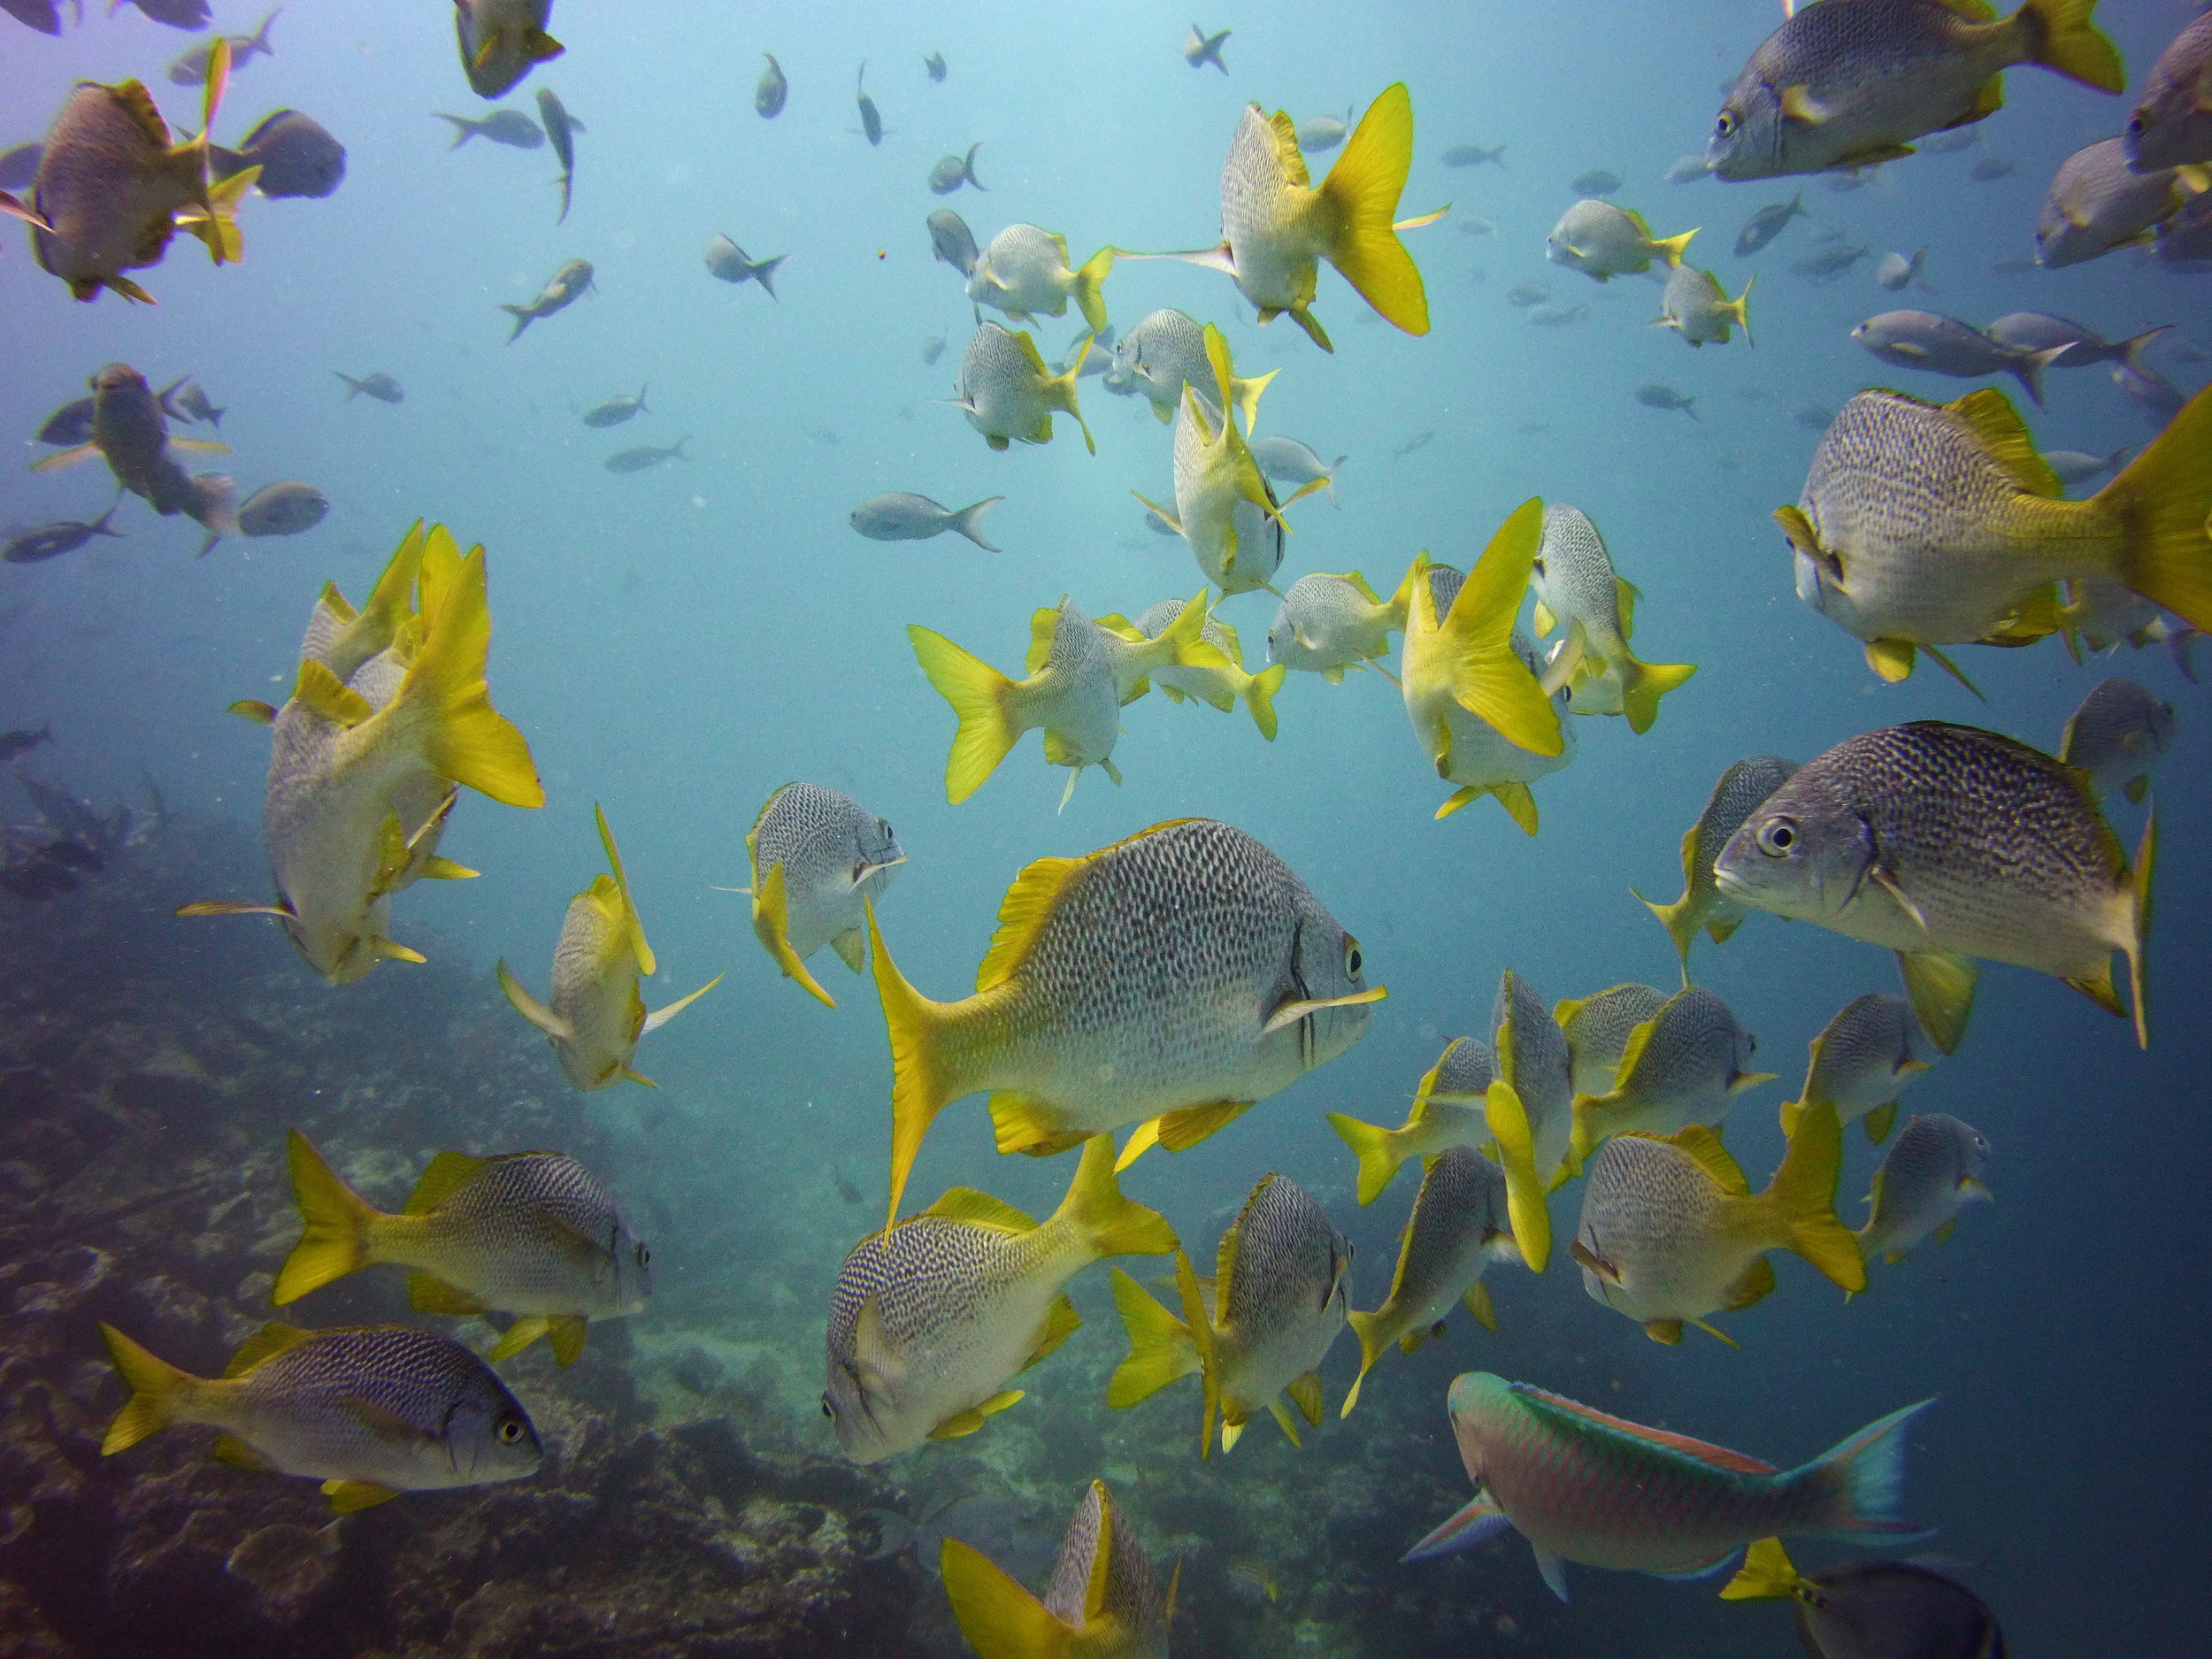 A school of yellowtail grunts and a lone parrotfish